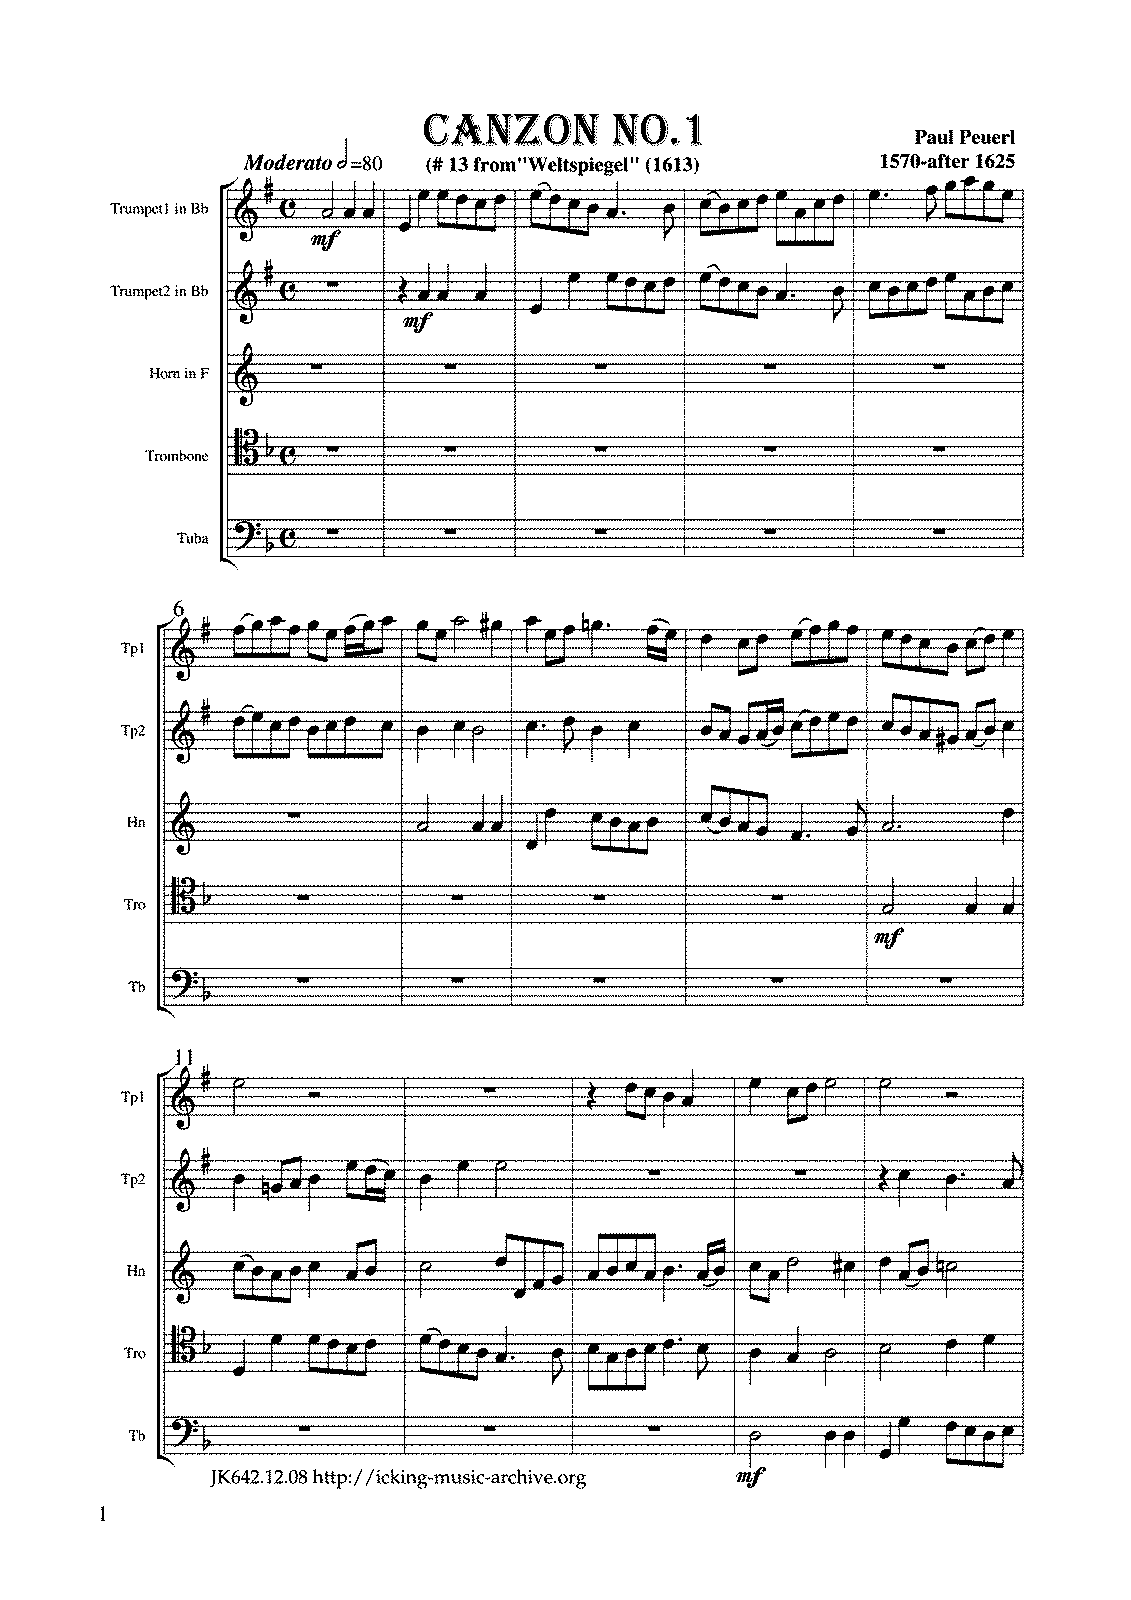 WIMA.6d65-Peuerl Canzon-No.1.part.pdf